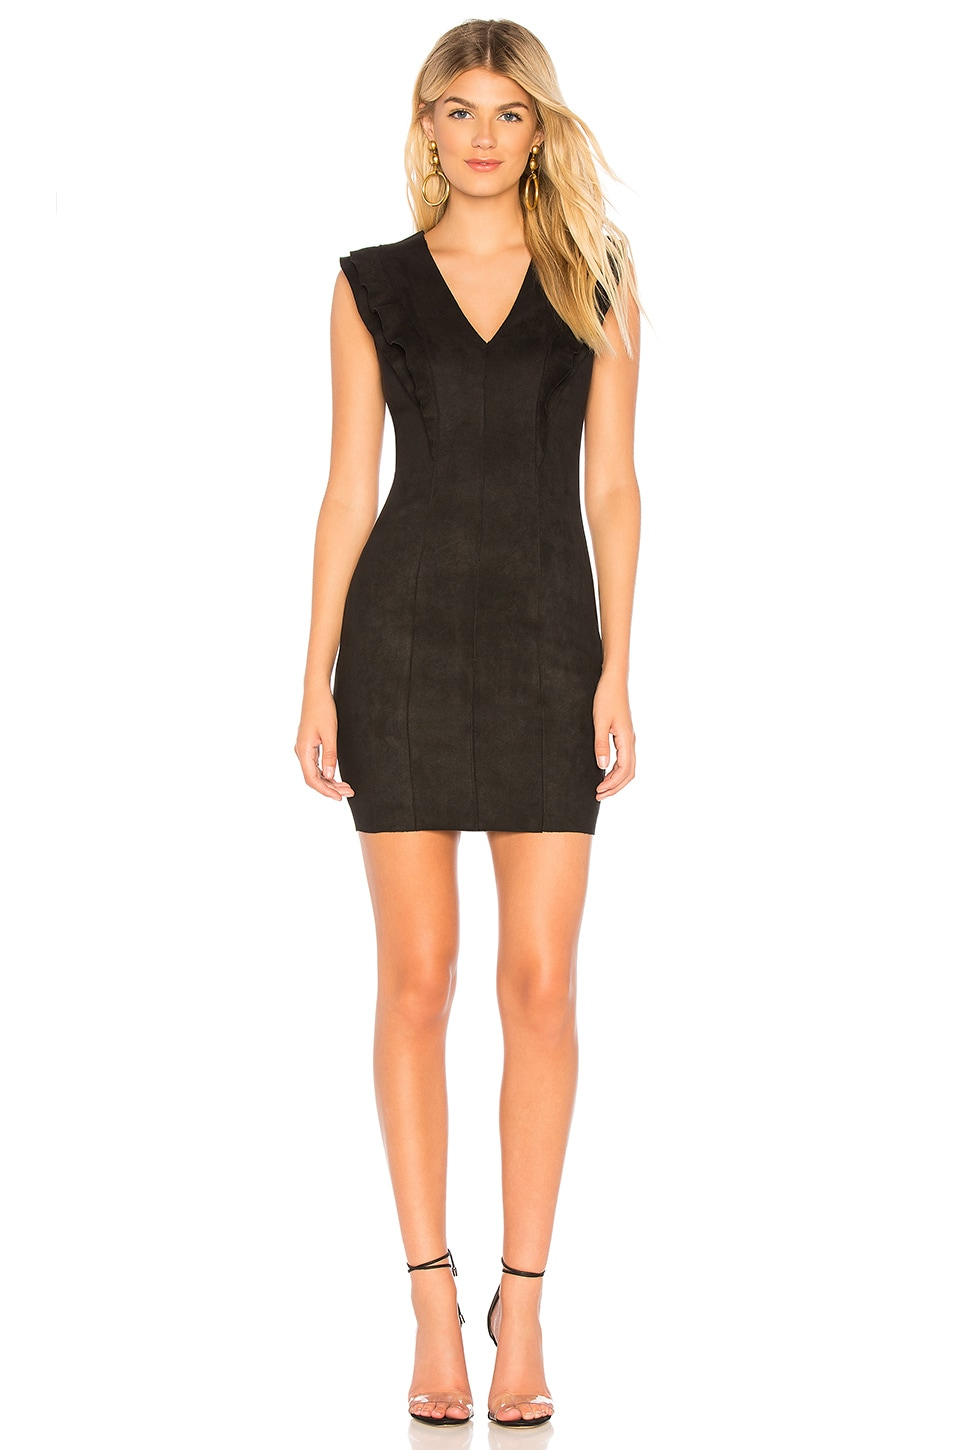 Glade Skiing Ruffled Faux Suede Dress in Black